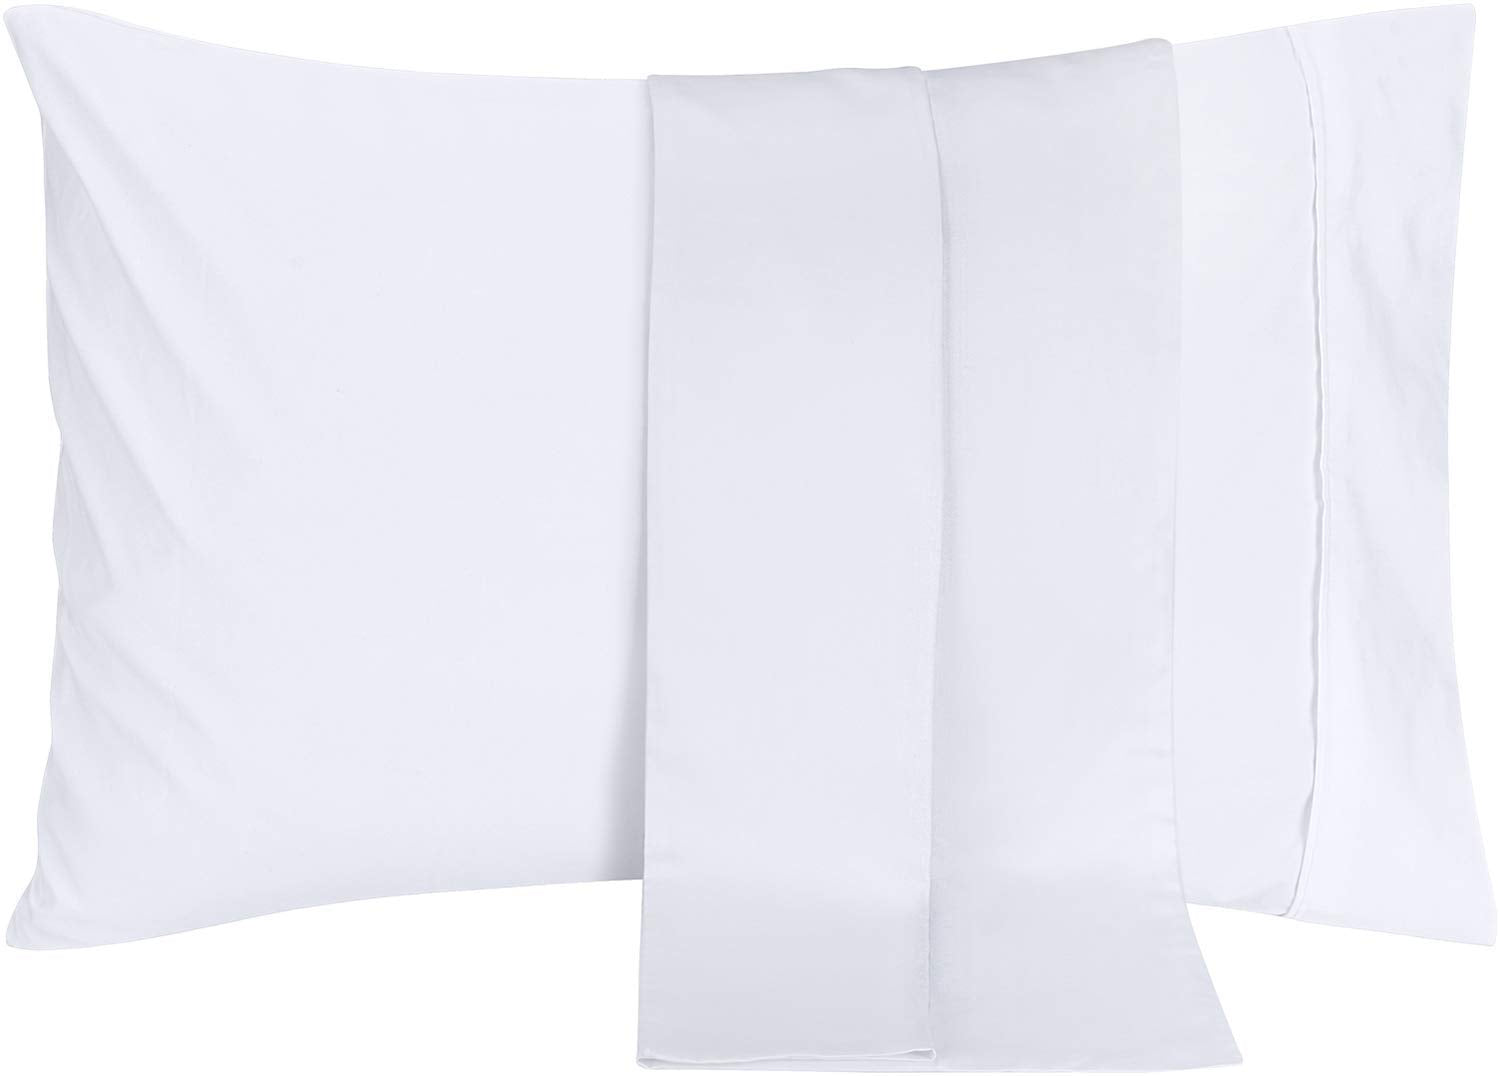 King, White Utopia Bedding Pillowcases Soft Brushed Microfiber Fabric- Wrinkle Shrinkage and Fade Resistant Pillow Covers 4 Pack